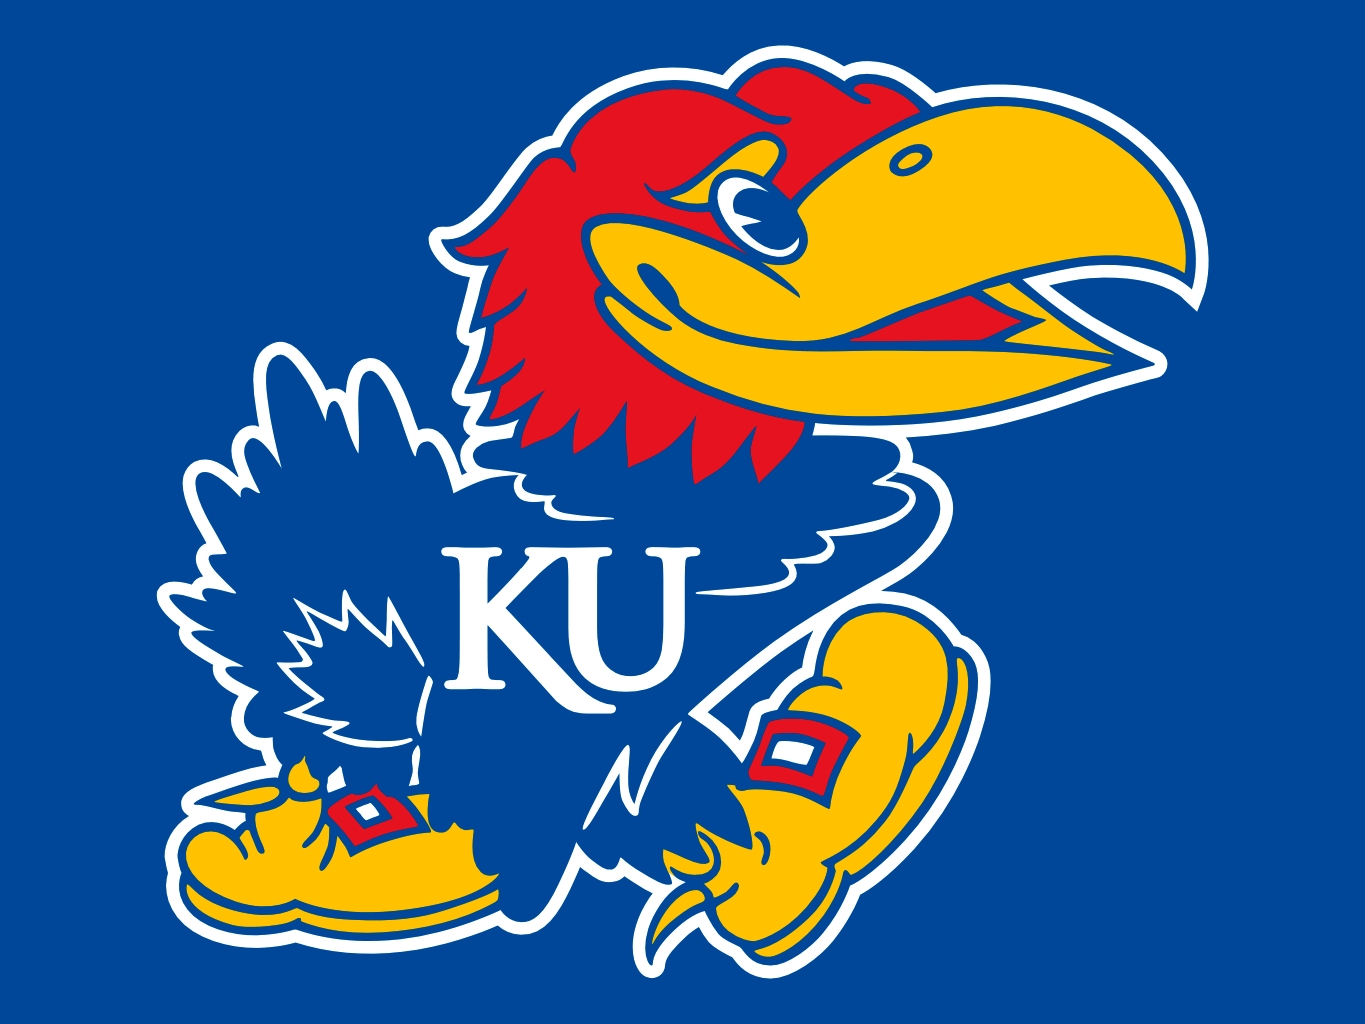 Comeback kids: Jayhawks rally to knock off West Virginia again